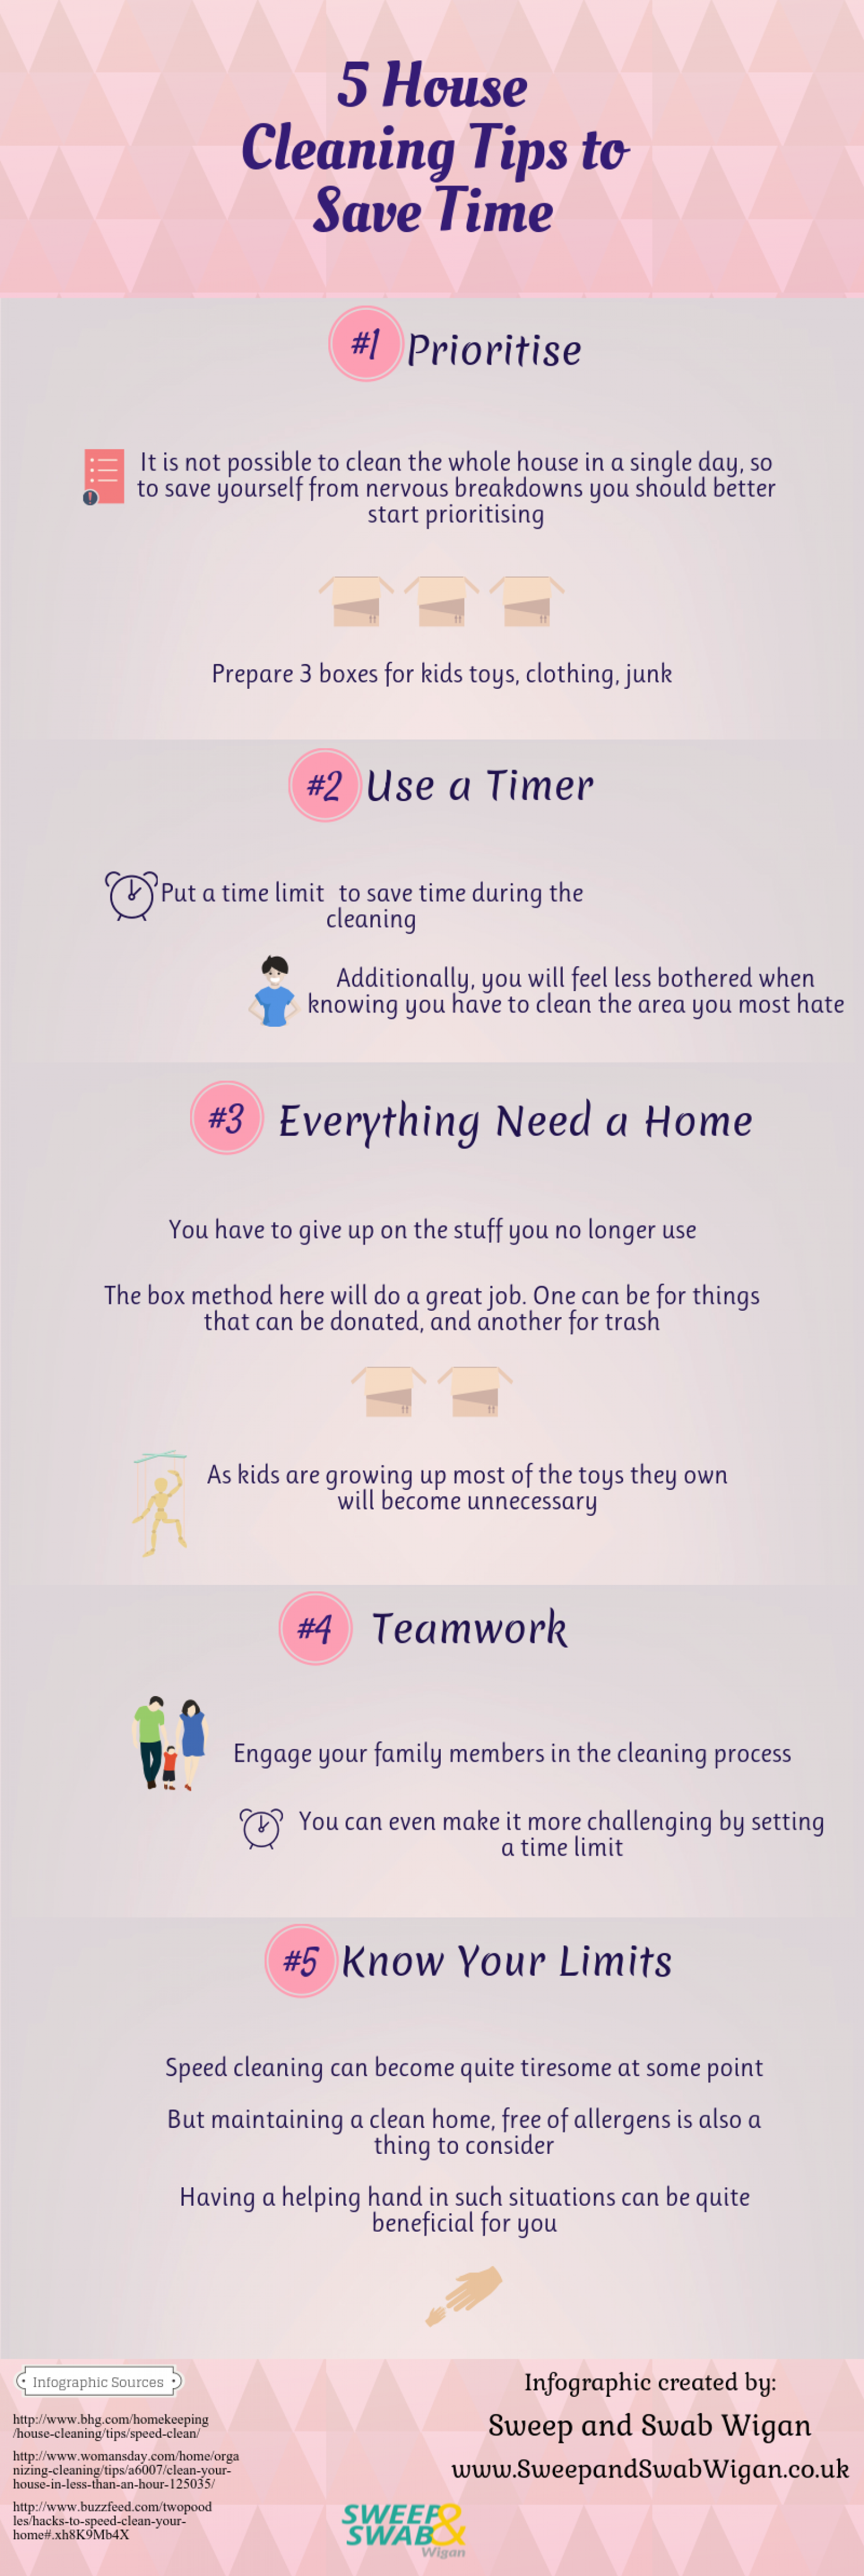 5 House Cleaning Tips to Save Time Infographic